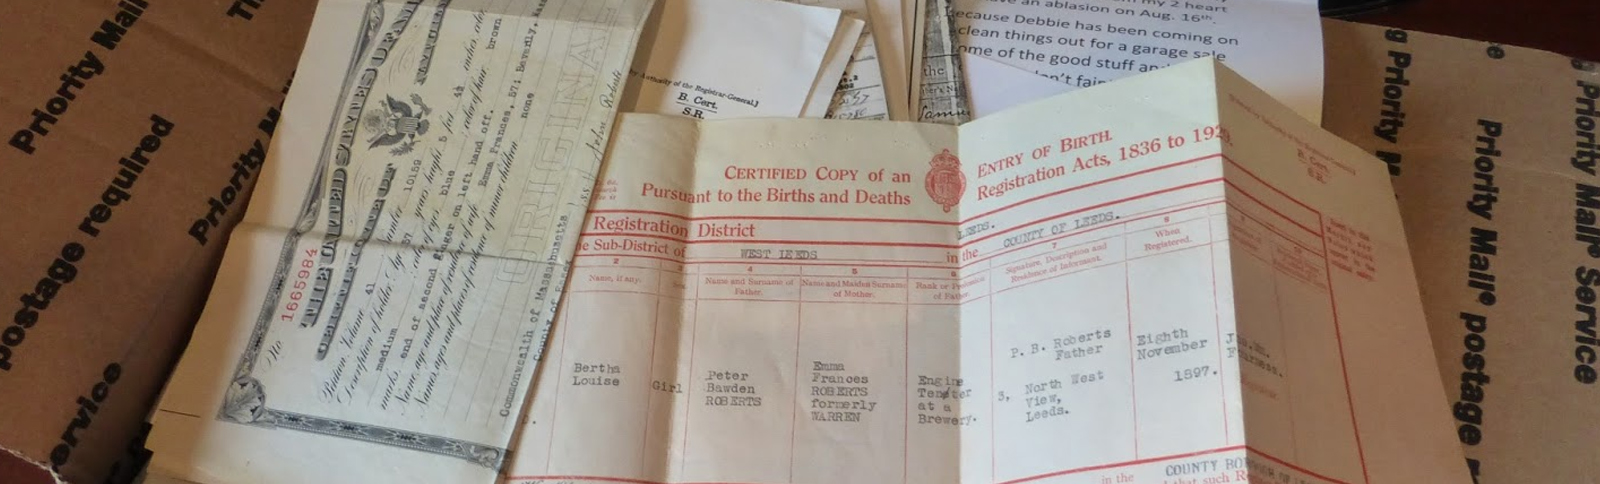 Personal Document Collections Scanning and Digitisation Services